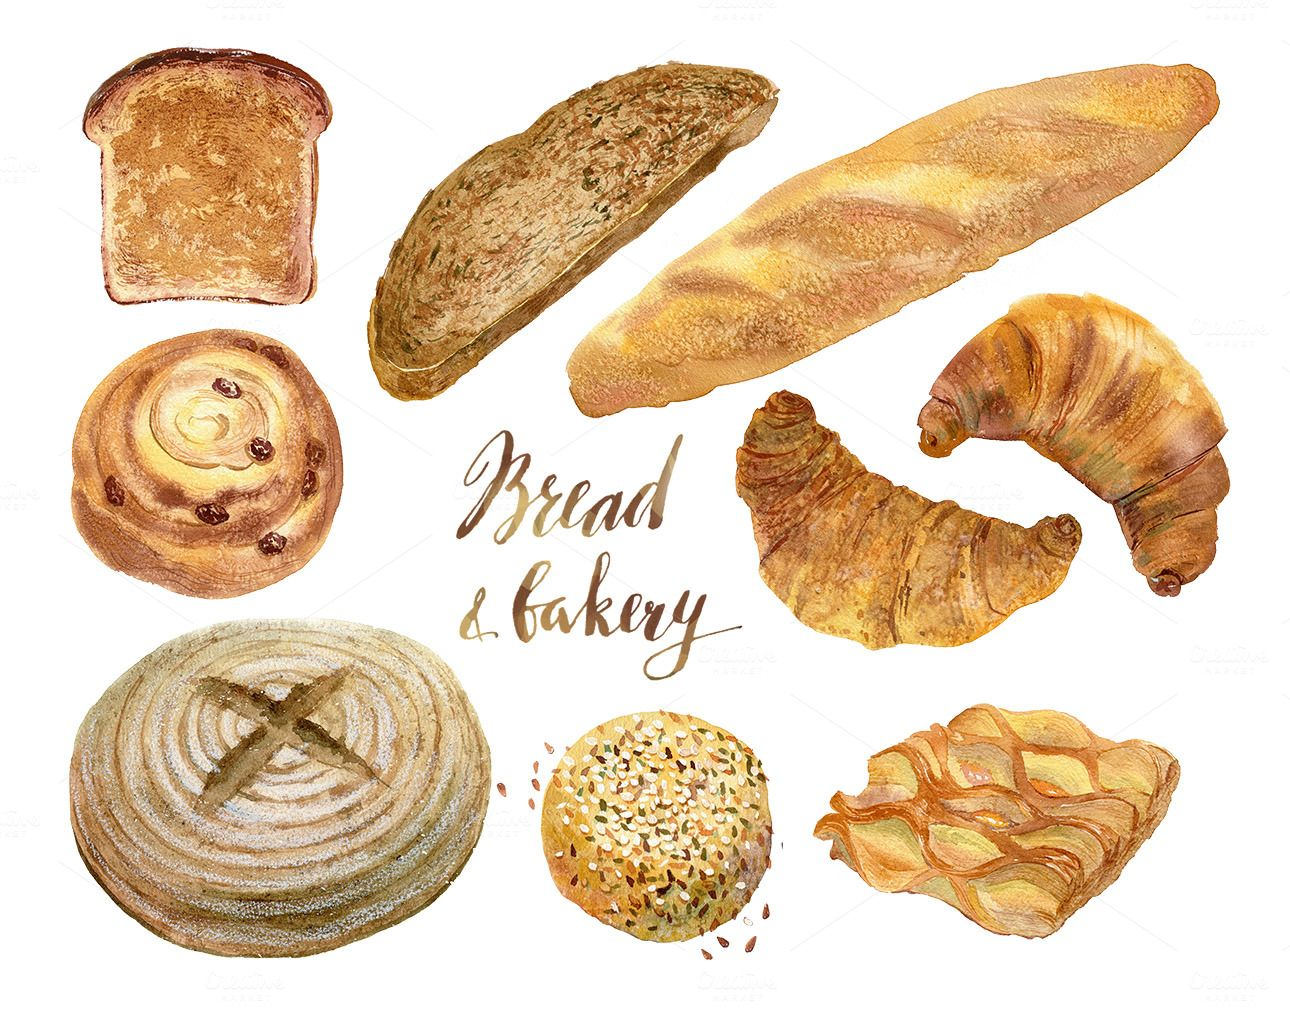 Watercolor Bakery Bread Collection Bakery Bread Bakery Food Illustrations